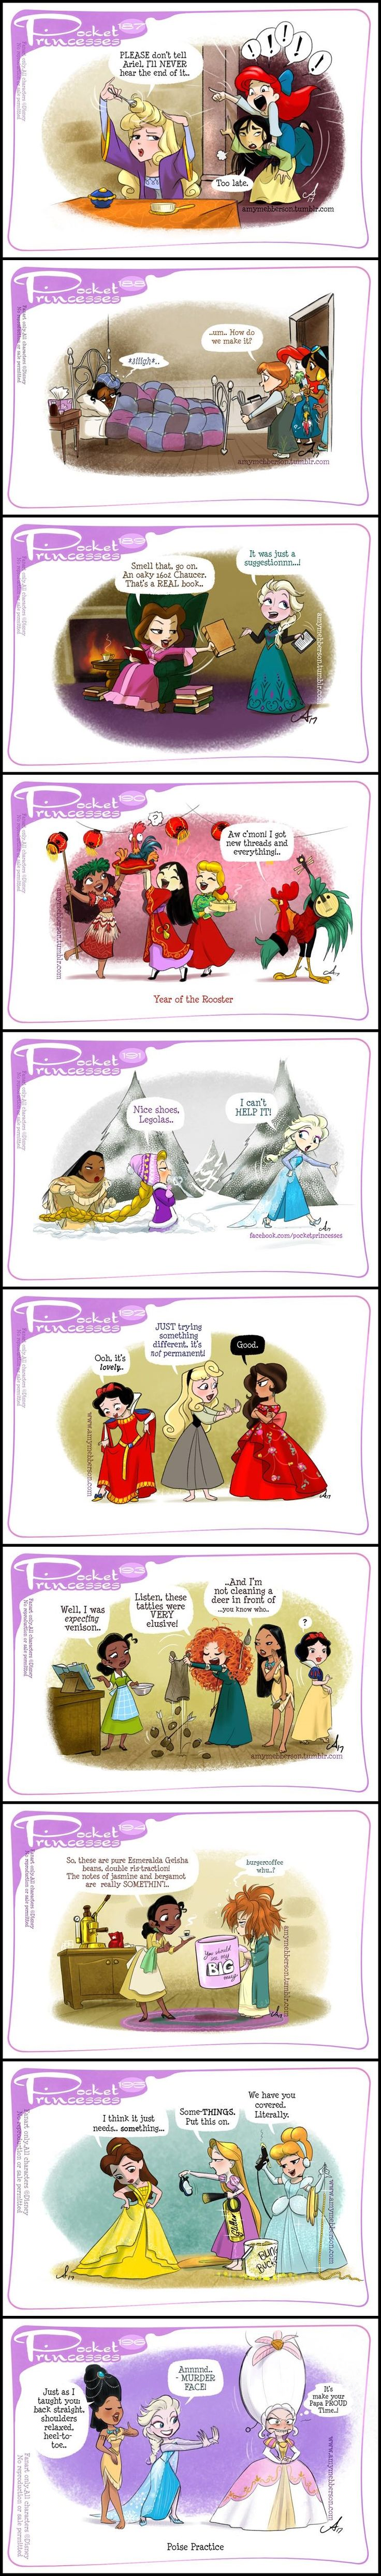 Pocket Princesses (Part 19) by Amy Mebberson